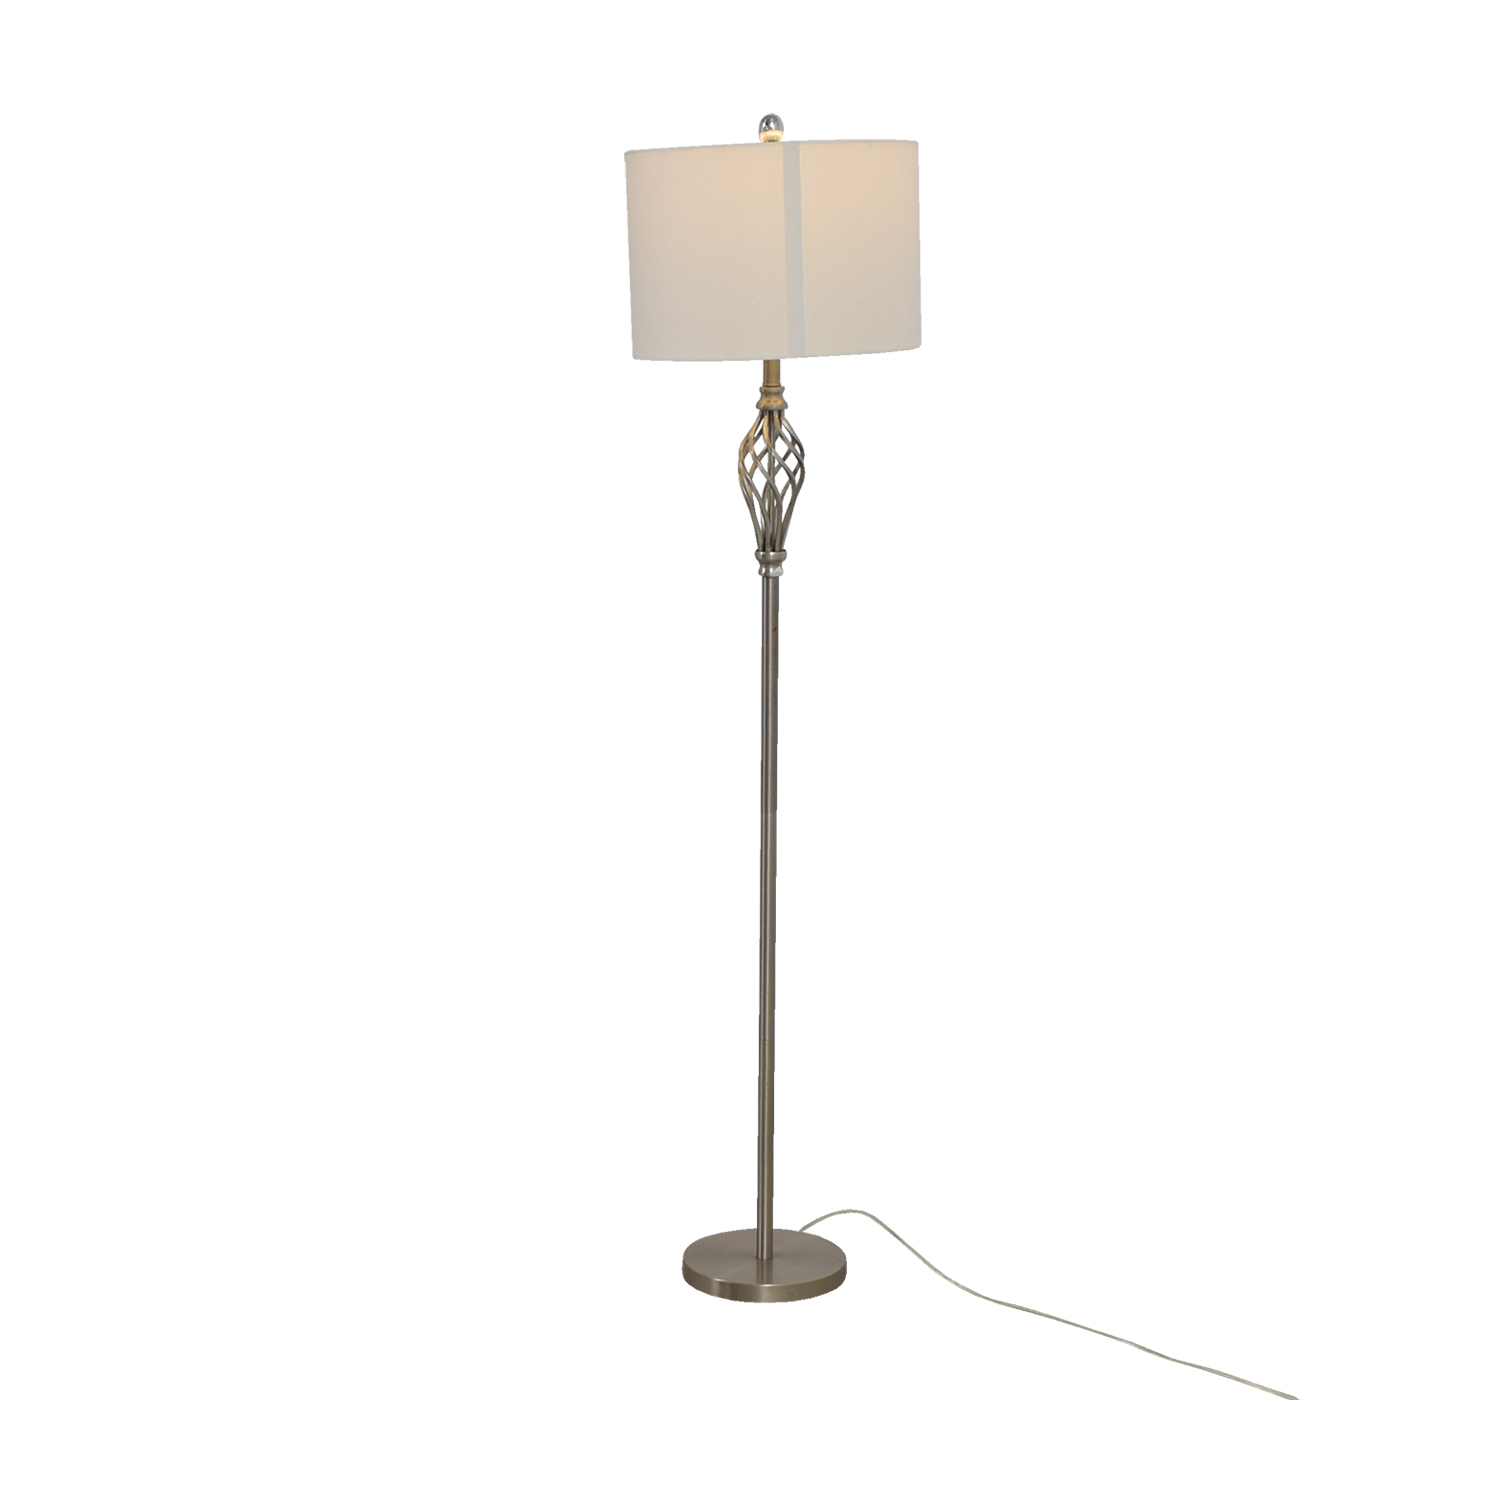 Unique Floor Lamps For Sale 85 Off Silver Decorative Floor Lamp Decor